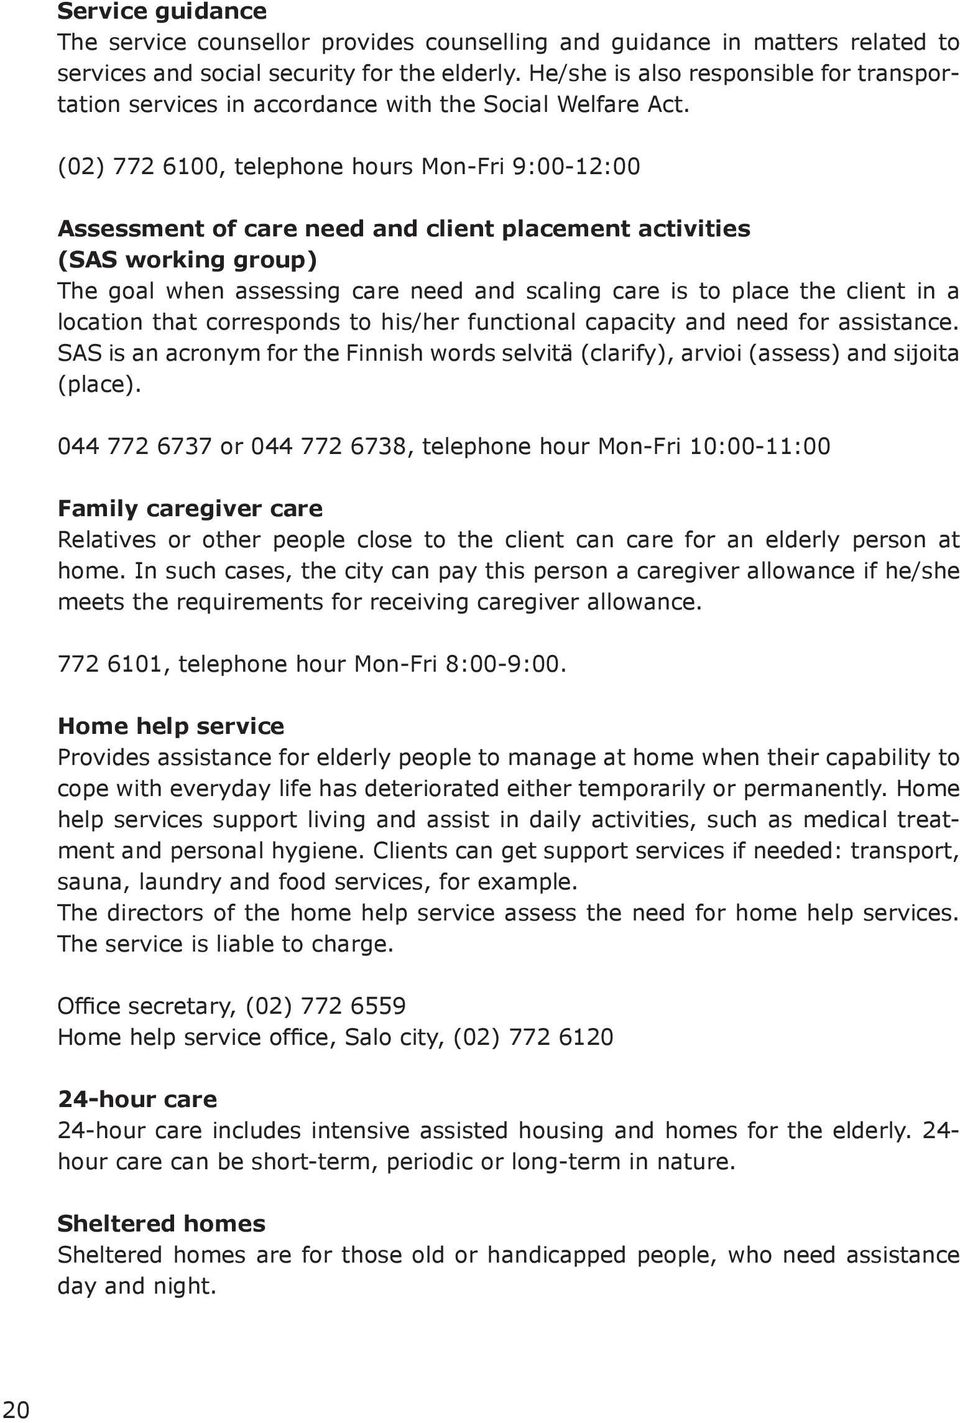 (02) 772 6100, telephone hours Mon-Fri 9:00-12:00 Assessment of care need and client placement activities (SAS working group) The goal when assessing care need and scaling care is to place the client